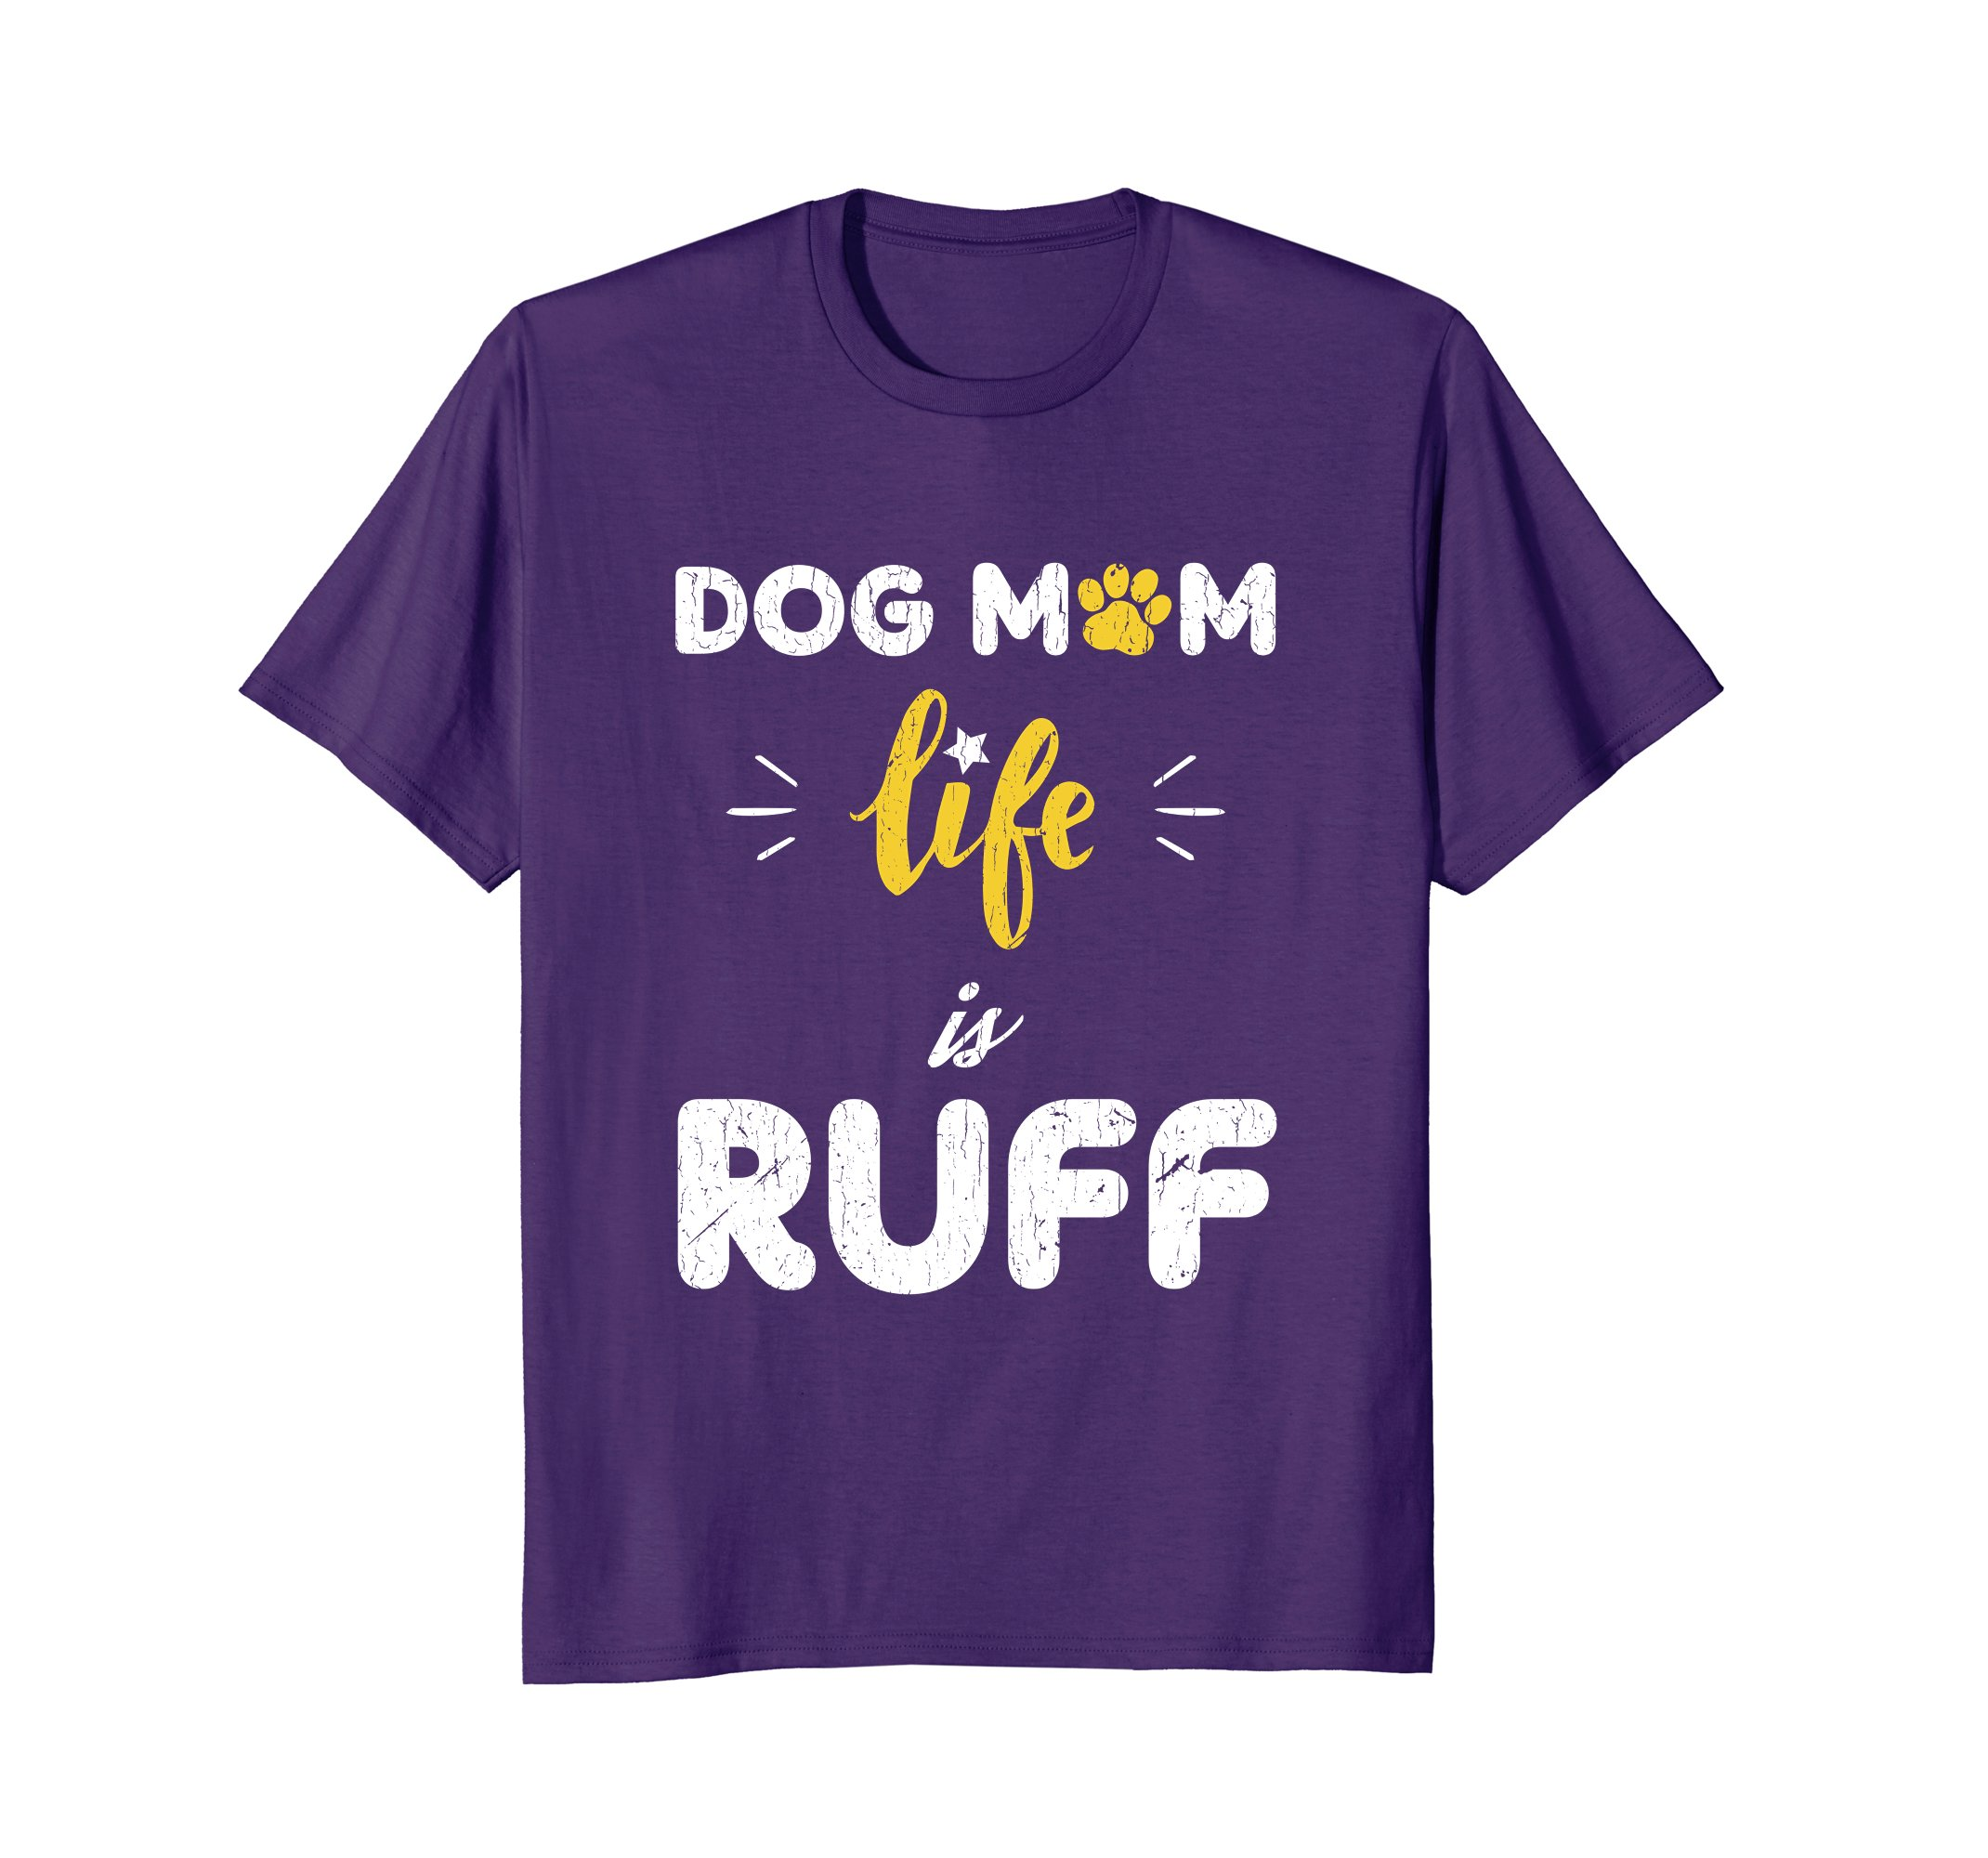 f6471946 Funny Dog Mom Gifts T Shirt | Dog Mom Life Is Ruff – PetDazz.com ...